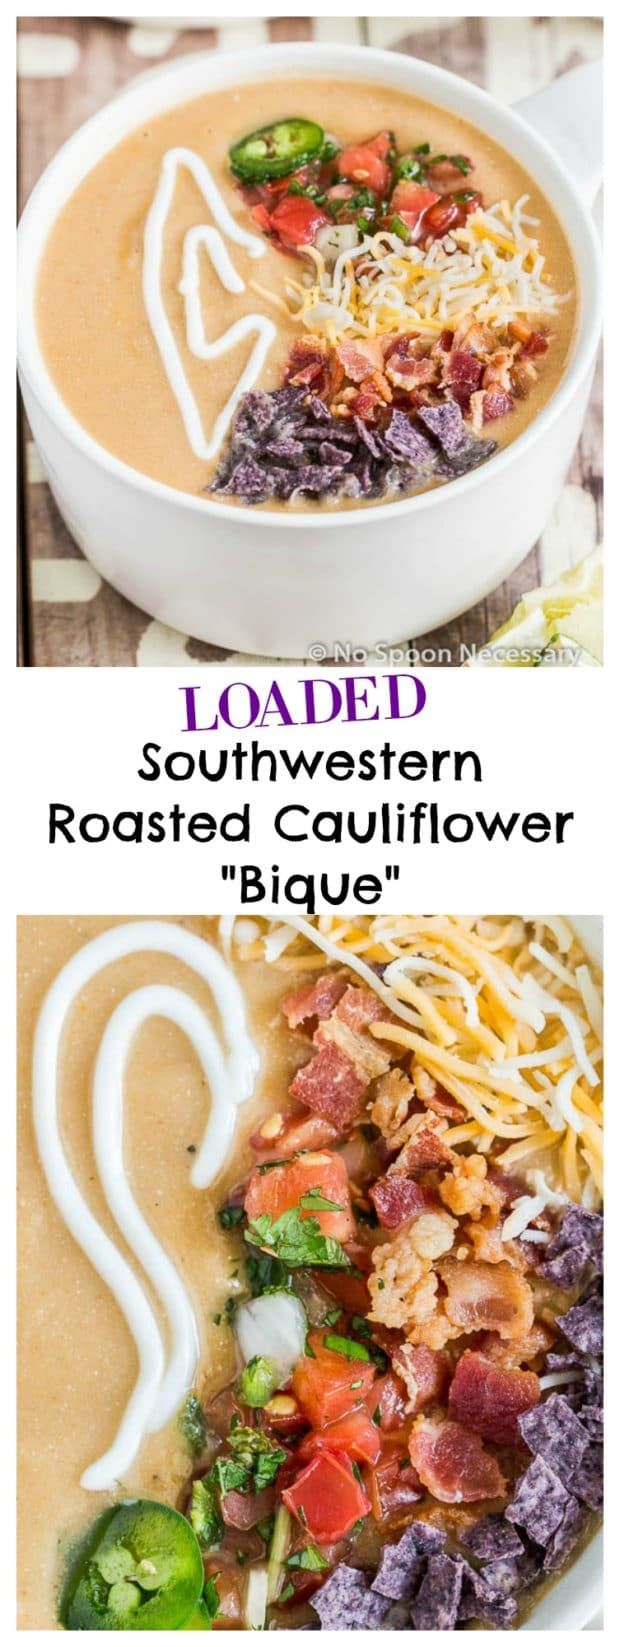 "Loaded Southwestern Cauliflower ""Bisque"" via @nospoonn"